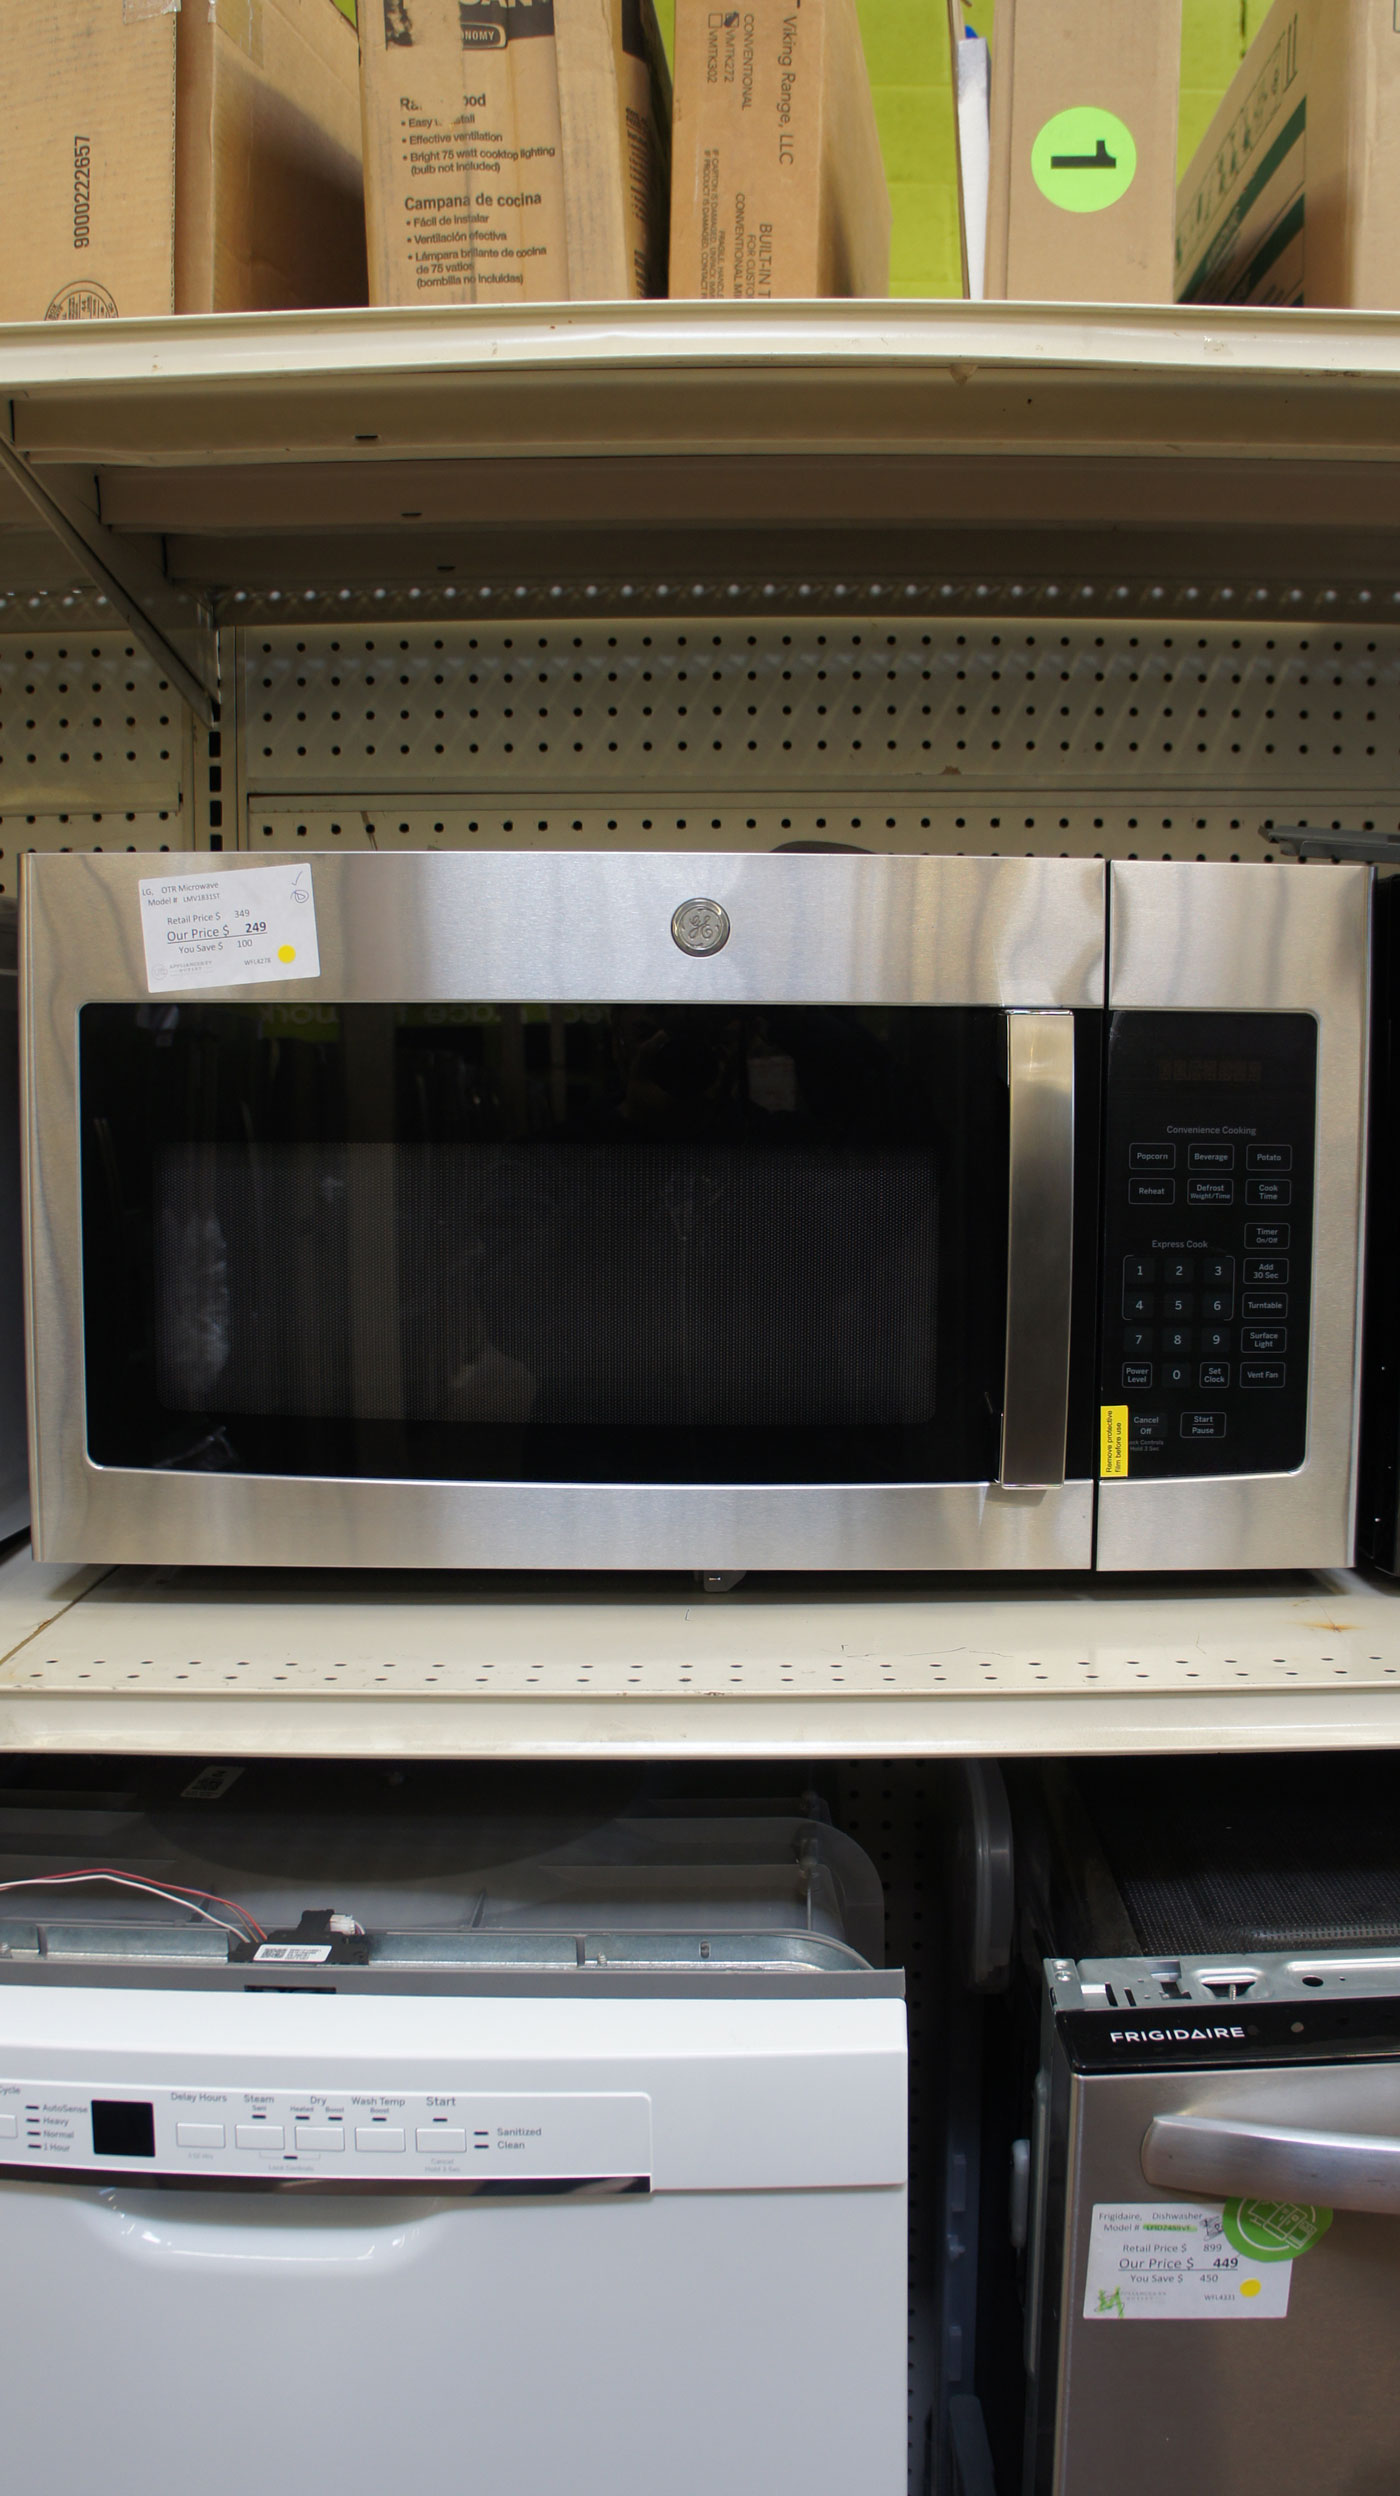 LG Over-The-Range Microwave Oven